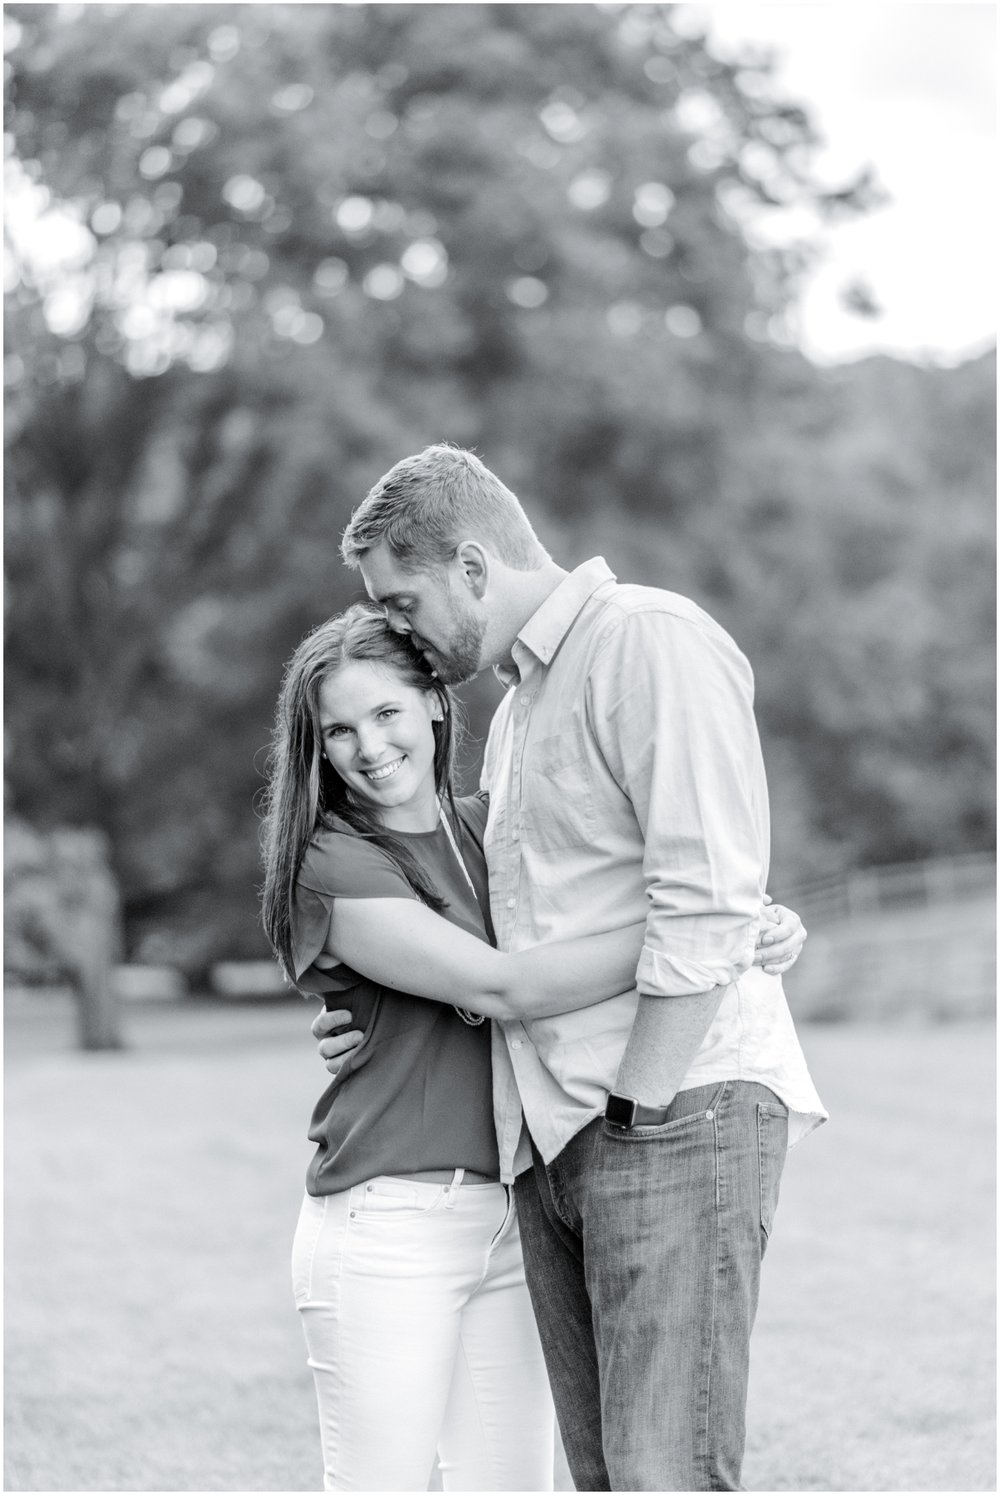 Summer Engagement Session at Hunting Hill Mansion - Krista Brackin Photography_0051.jpg